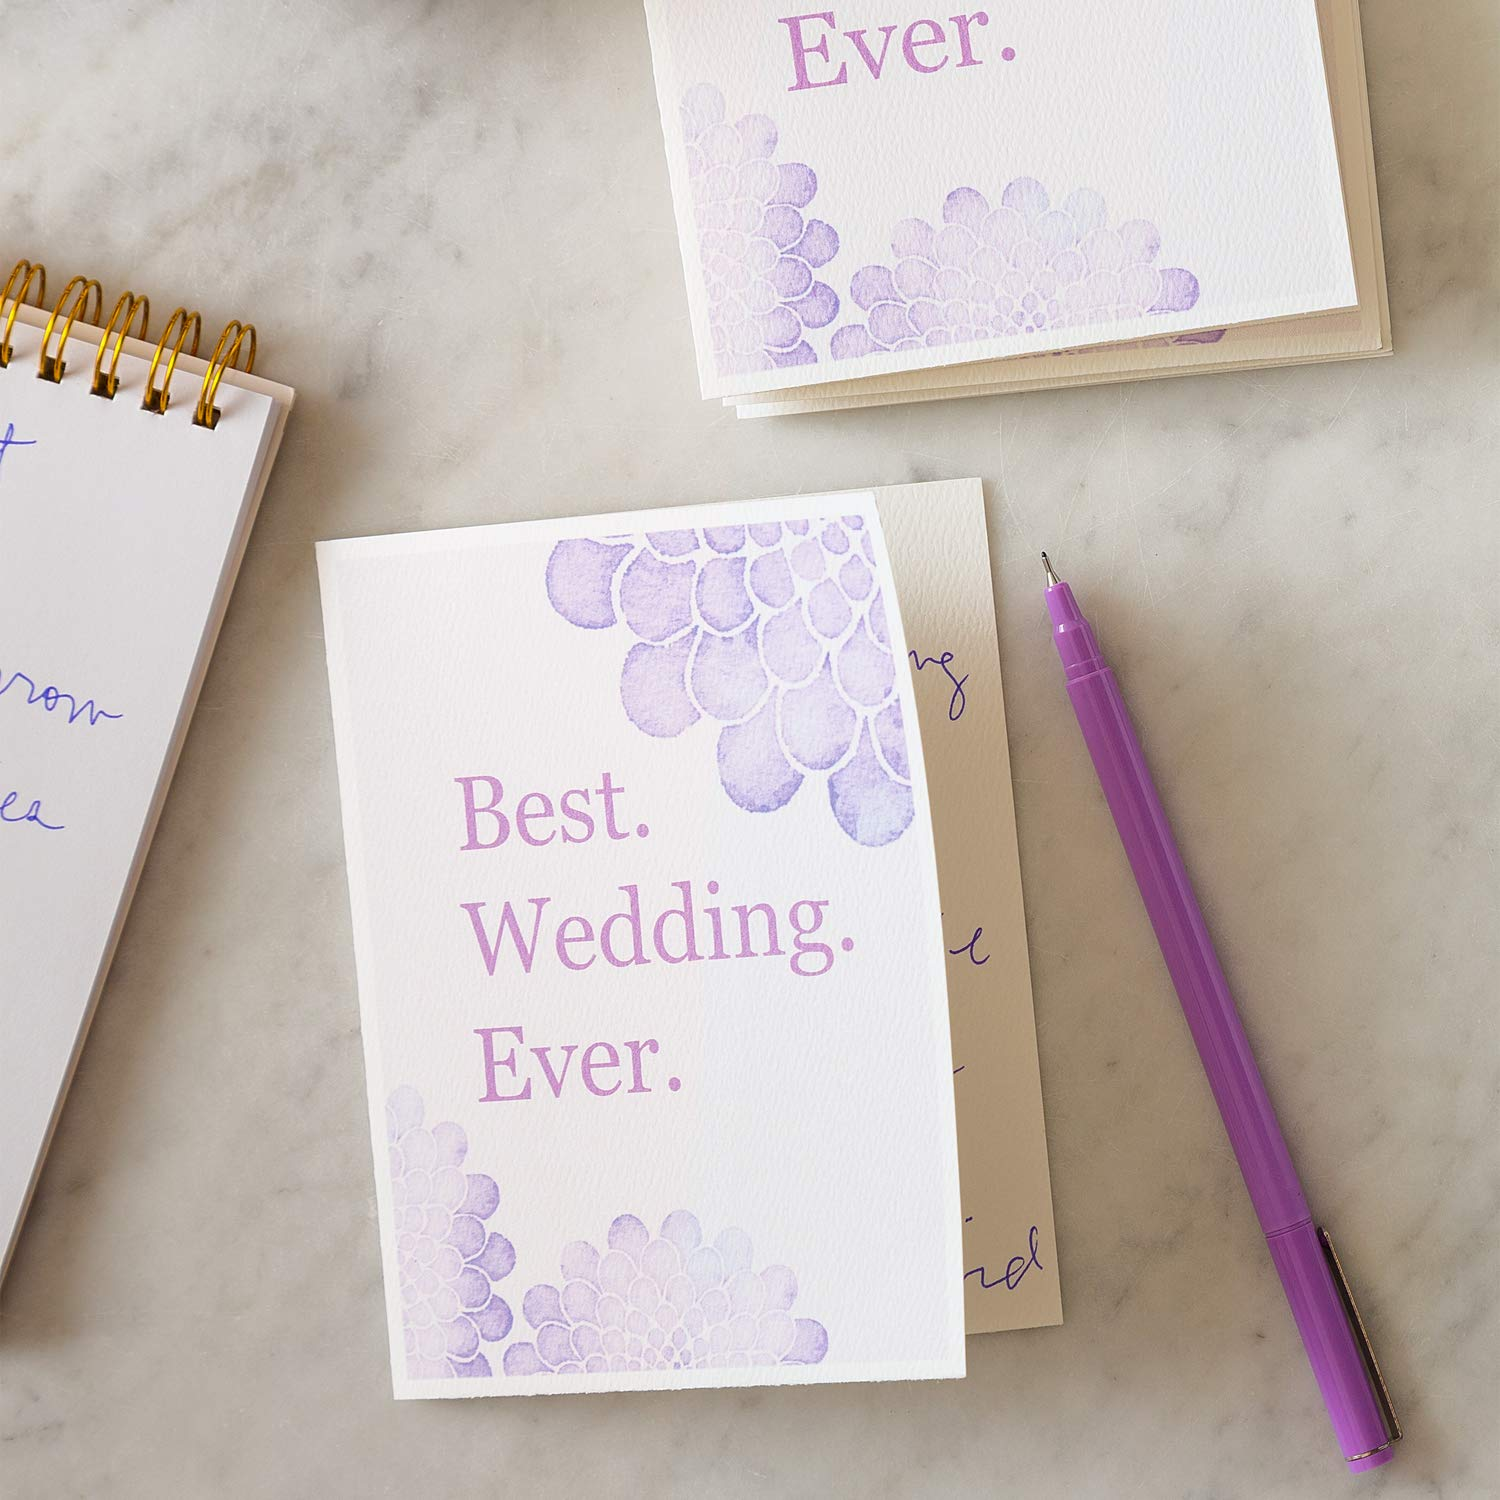 avery printable note cards inkjet printers 50 cards and envelopes